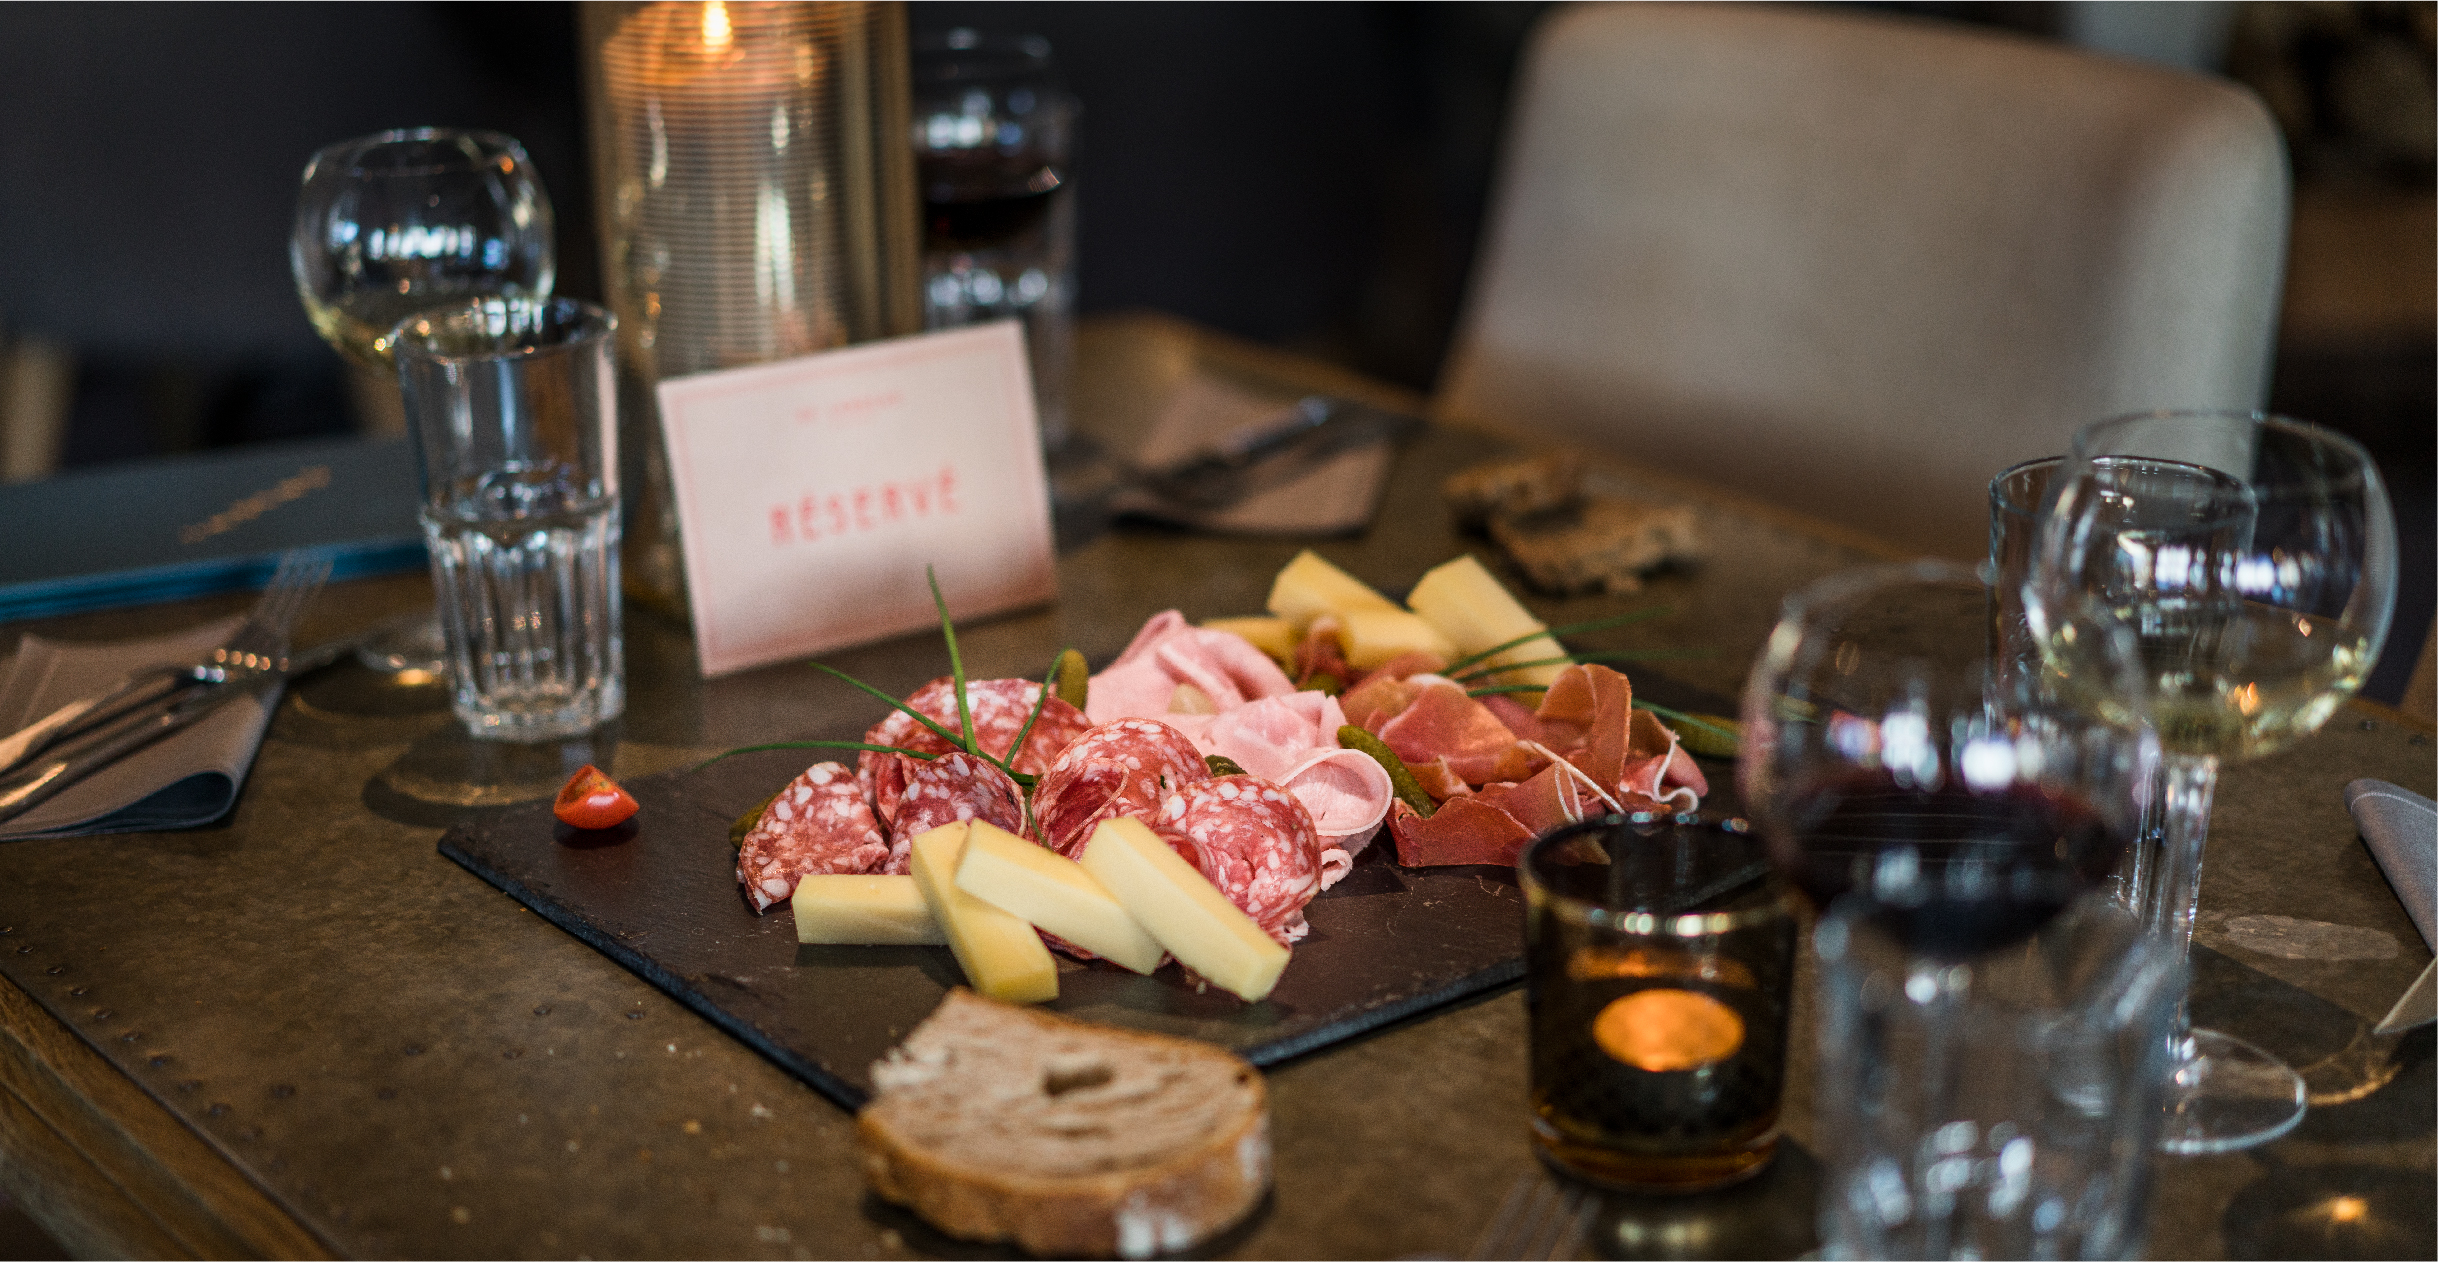 Charcuterie and cheese board with De Laroche branded reserved sign table setting